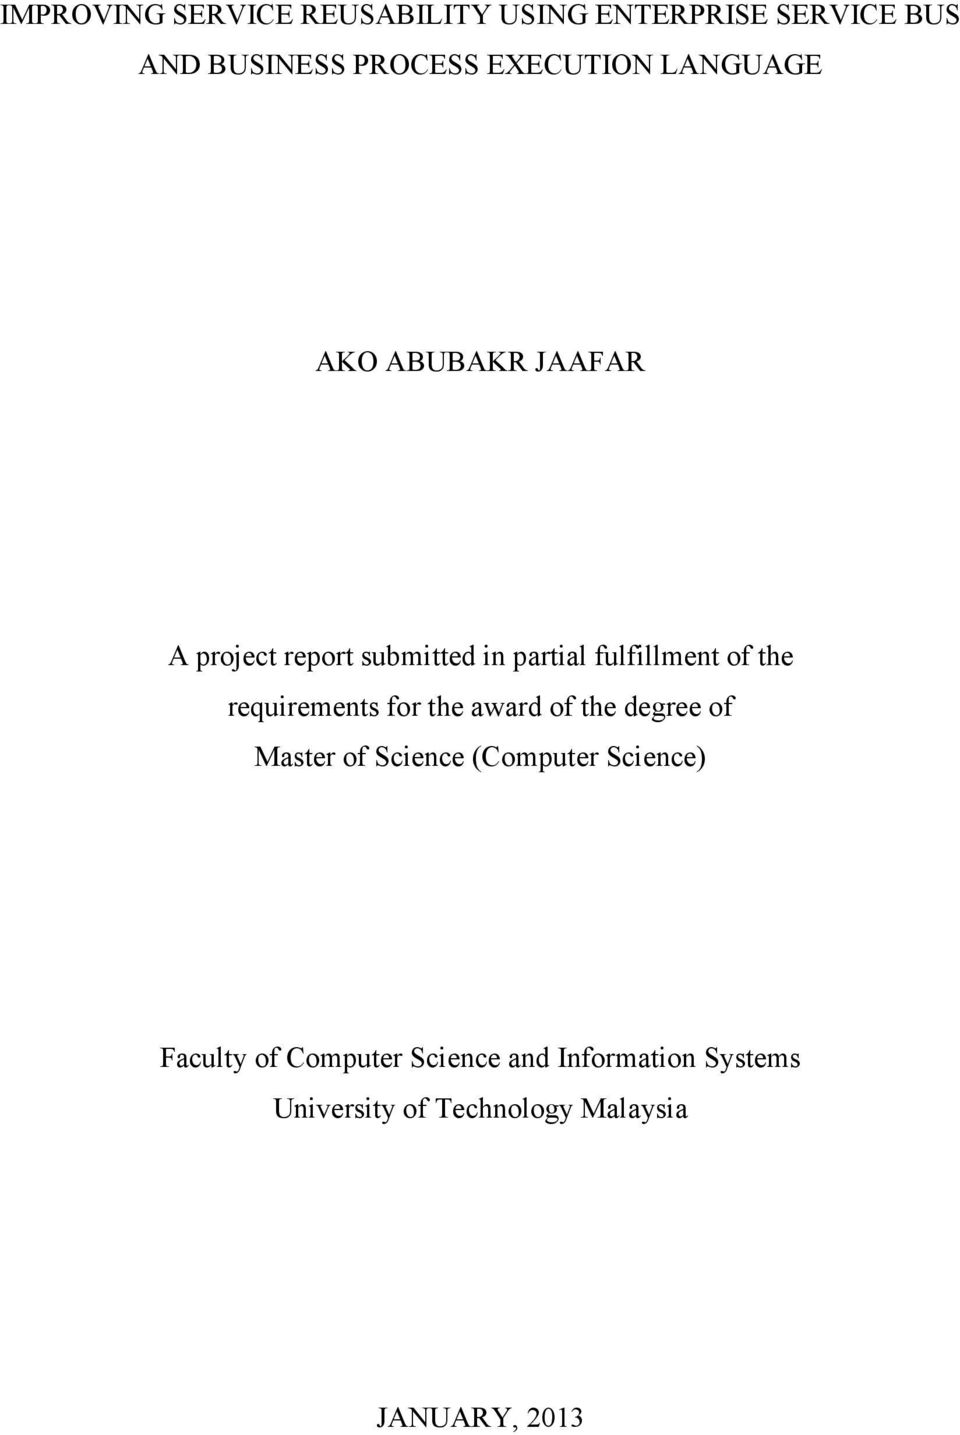 of the requirements for the award of the degree of Master of Science (Computer Science)